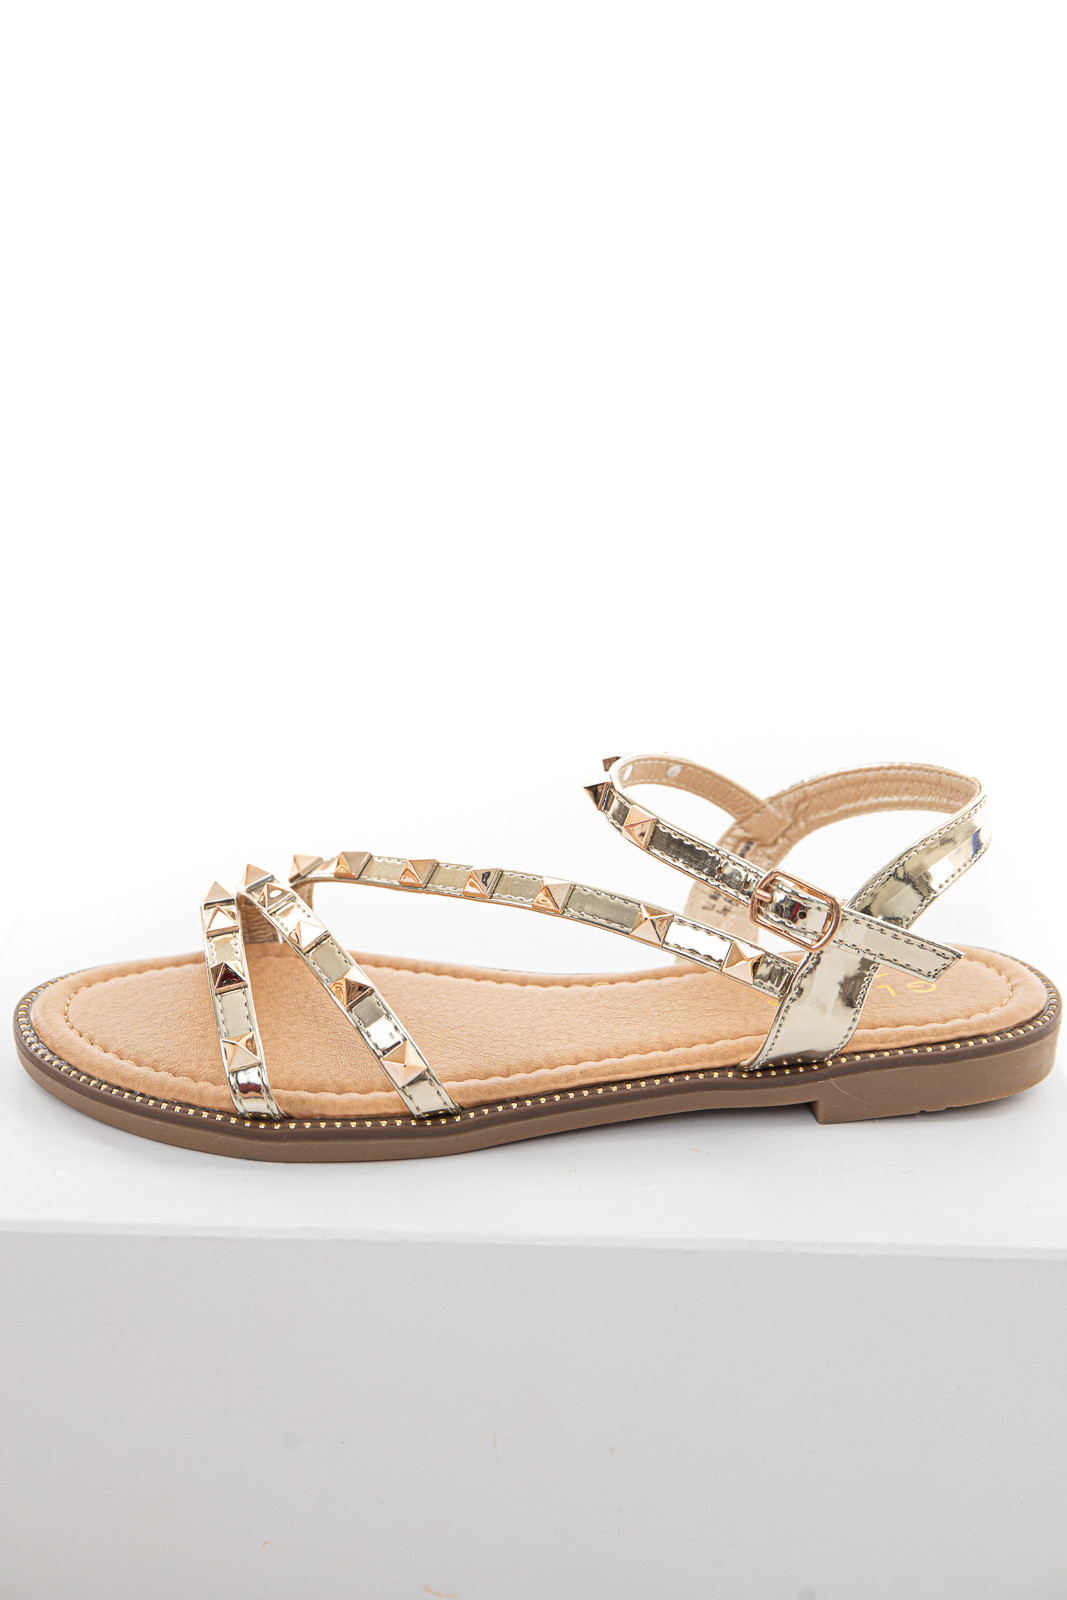 Shiny Gold Studded Strappy Open Toe Sandals with Buckle